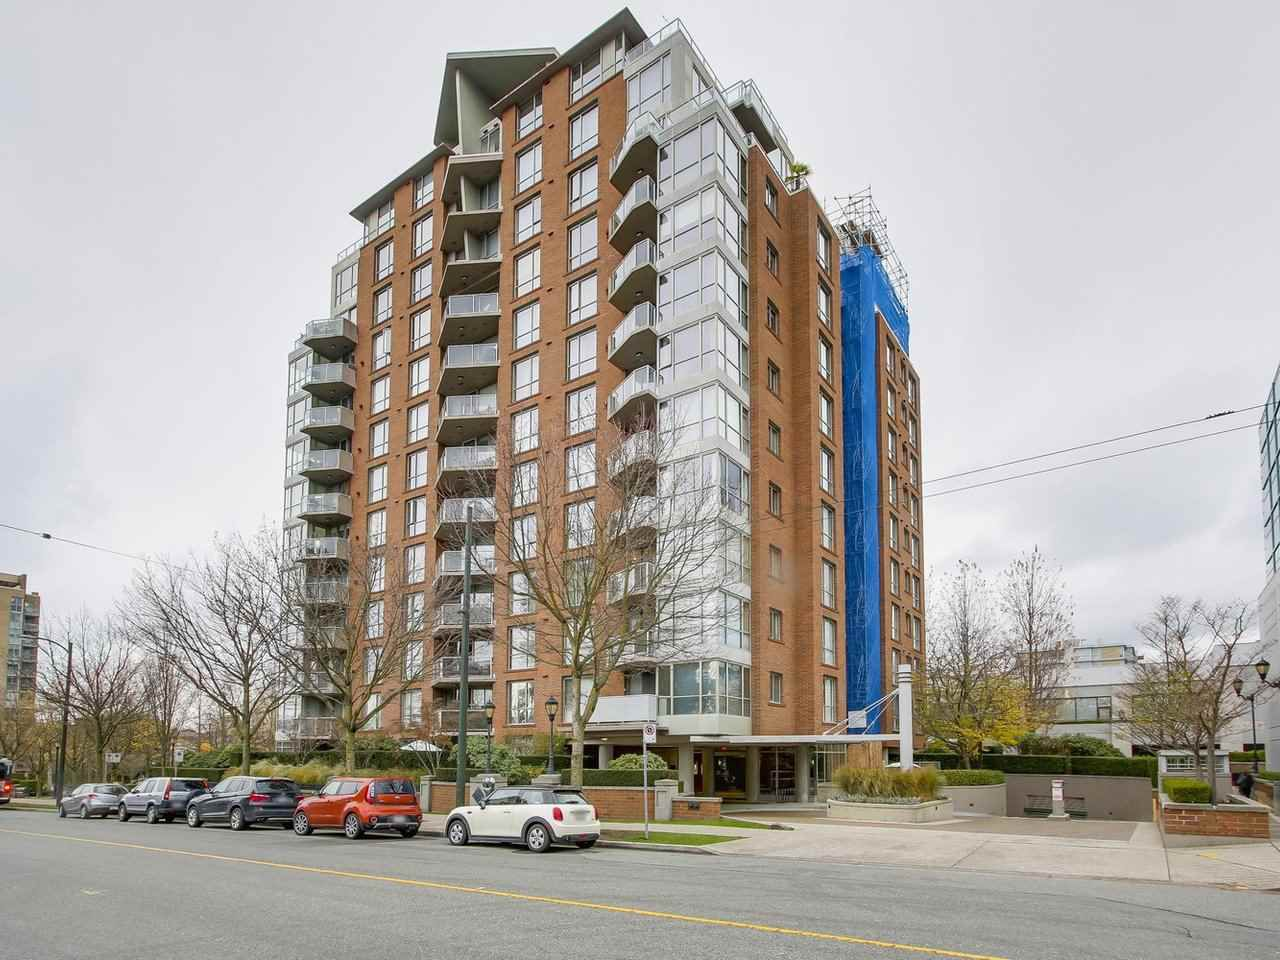 Main Photo: 408 1575 W 10TH AVENUE in Vancouver: Fairview VW Condo for sale (Vancouver West)  : MLS®# R2221749